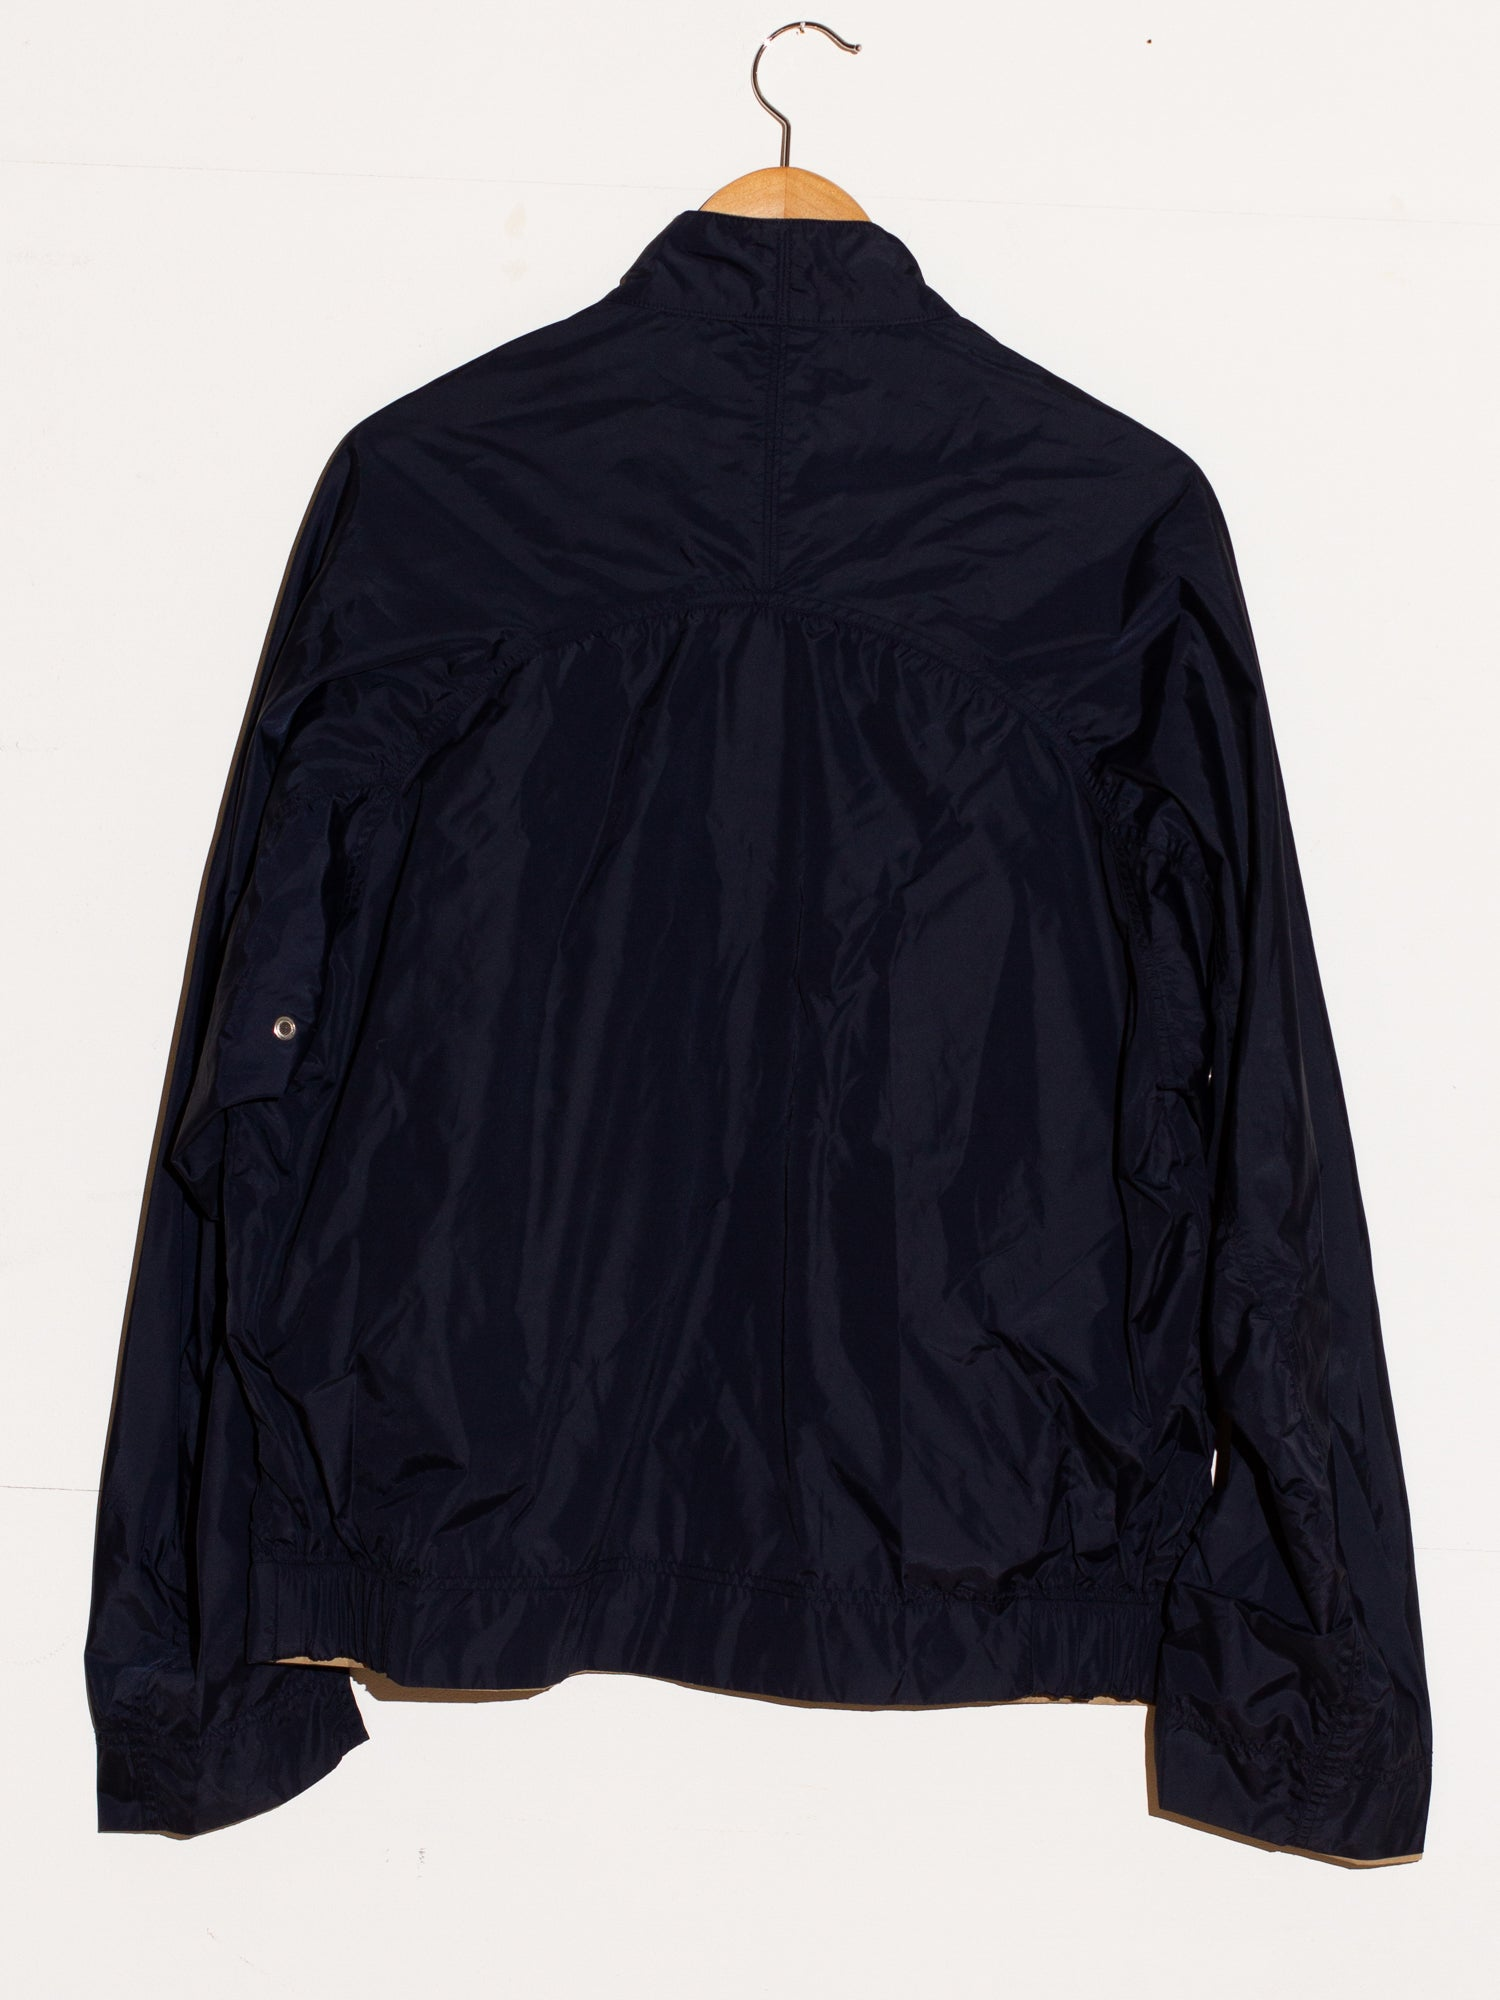 PRADA JACKET REVERSIBLE